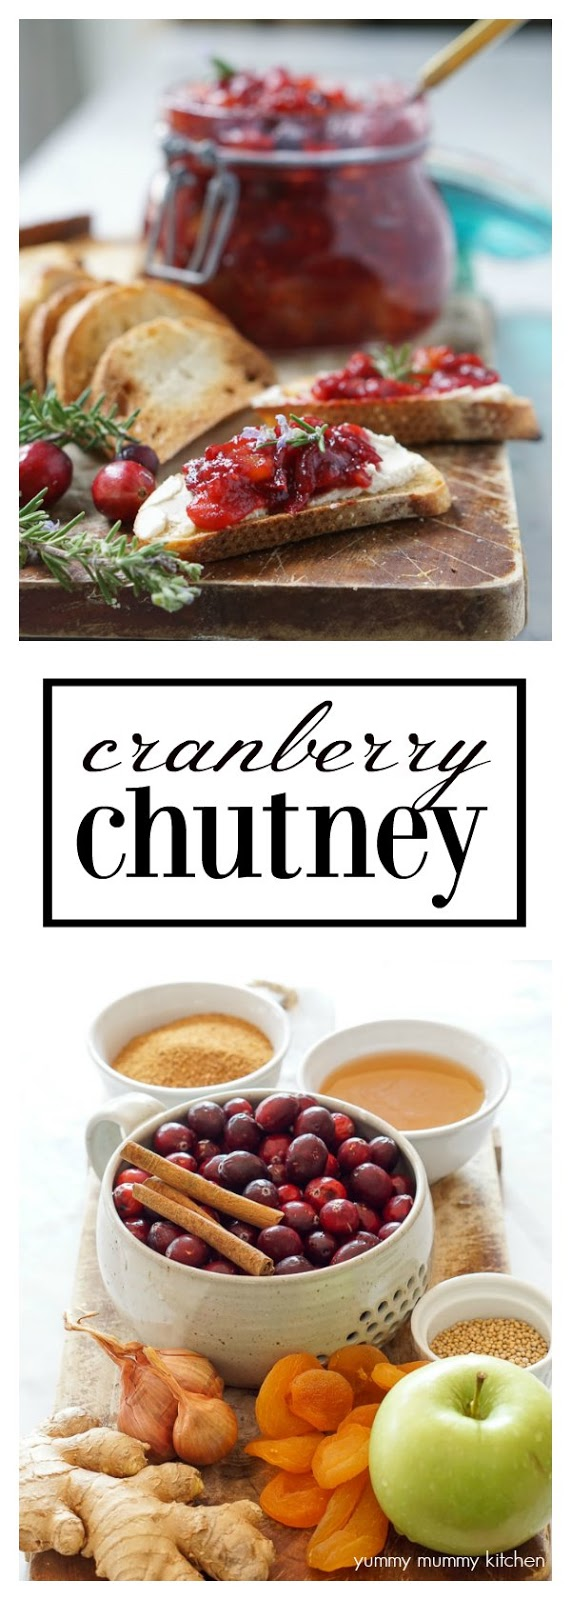 This beautiful cranberry chutney recipe is a delicious alternative to cranberry sauce. It's perfect on everything from crostini to cheese boards to Buddha bowls! Cranberry chutney also makes a great DIY gift!